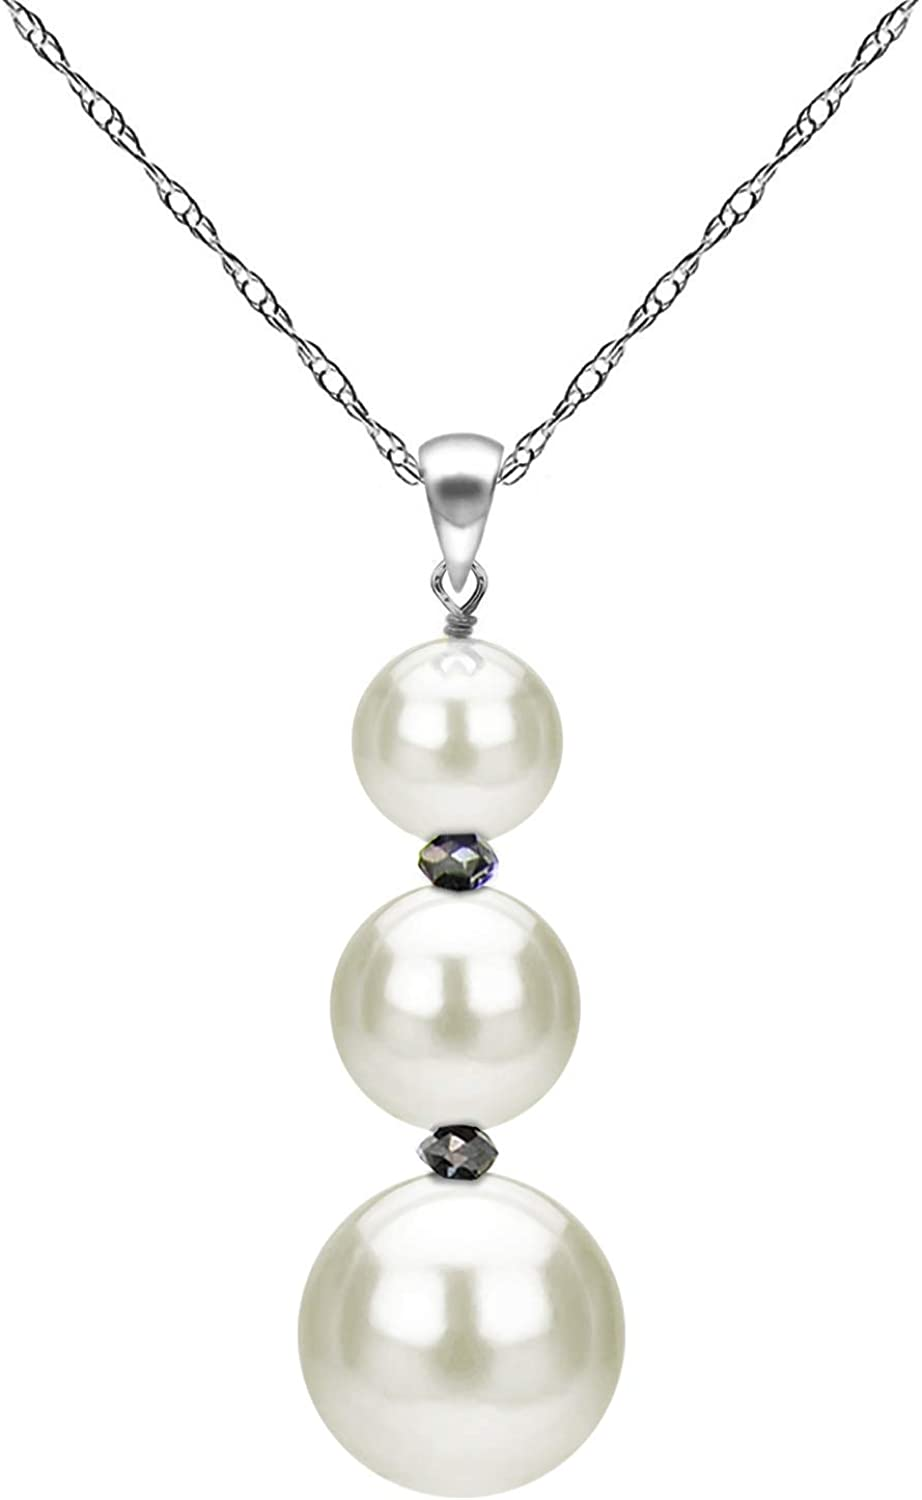 Freshwater Cultured White Pearl and High quality new Gemstones C Limited time for free shipping Pendant Necklace